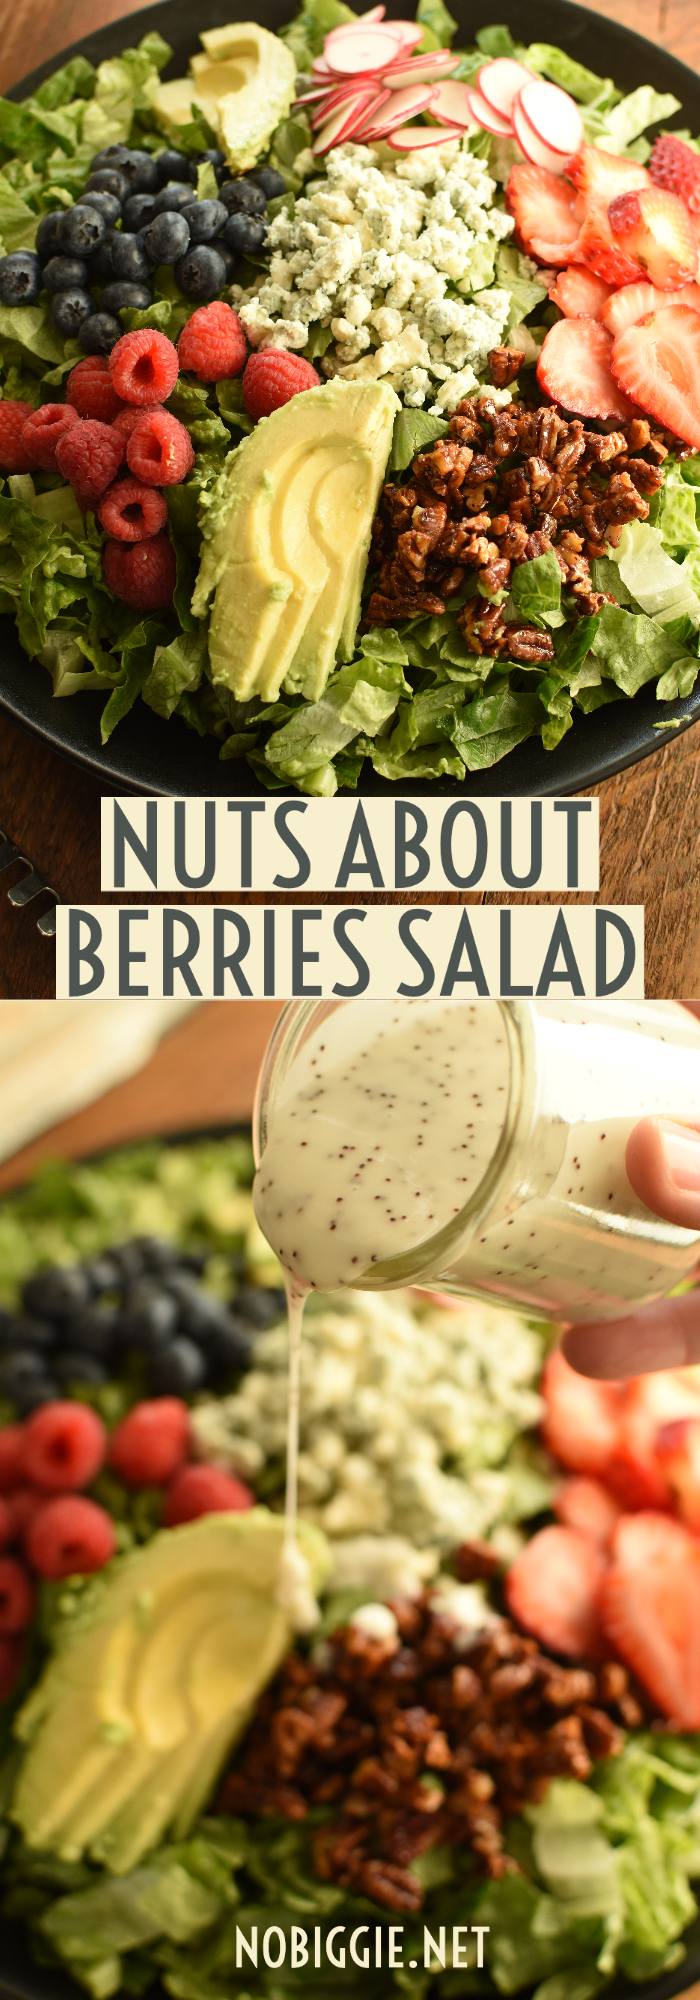 A delicious salad loaded with fresh berries and served with creamy blue cheese crumbles, avocado slices and tossed with a homemade poppyseed dressing. #freshberries #nutsforberriessalad #salad #saladrecipes